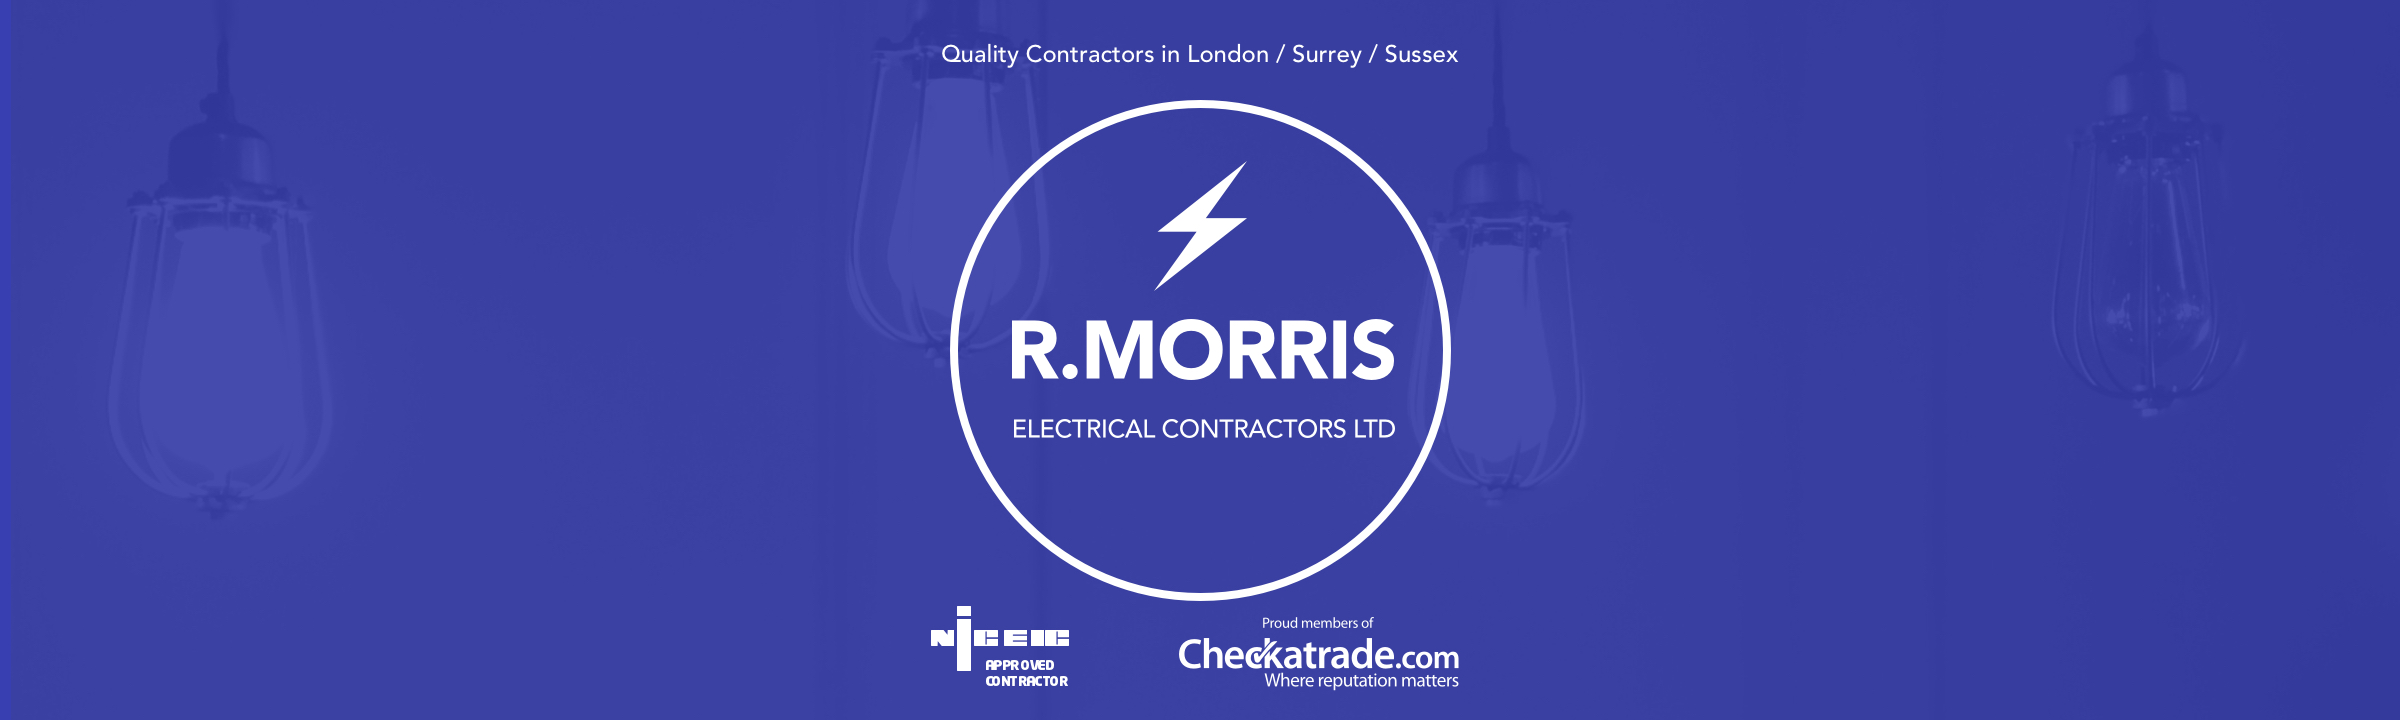 Rmorris Electrical Contractors Limited London Contractor We Always Provide Quality Services Call 07763043321 For A Free Quote